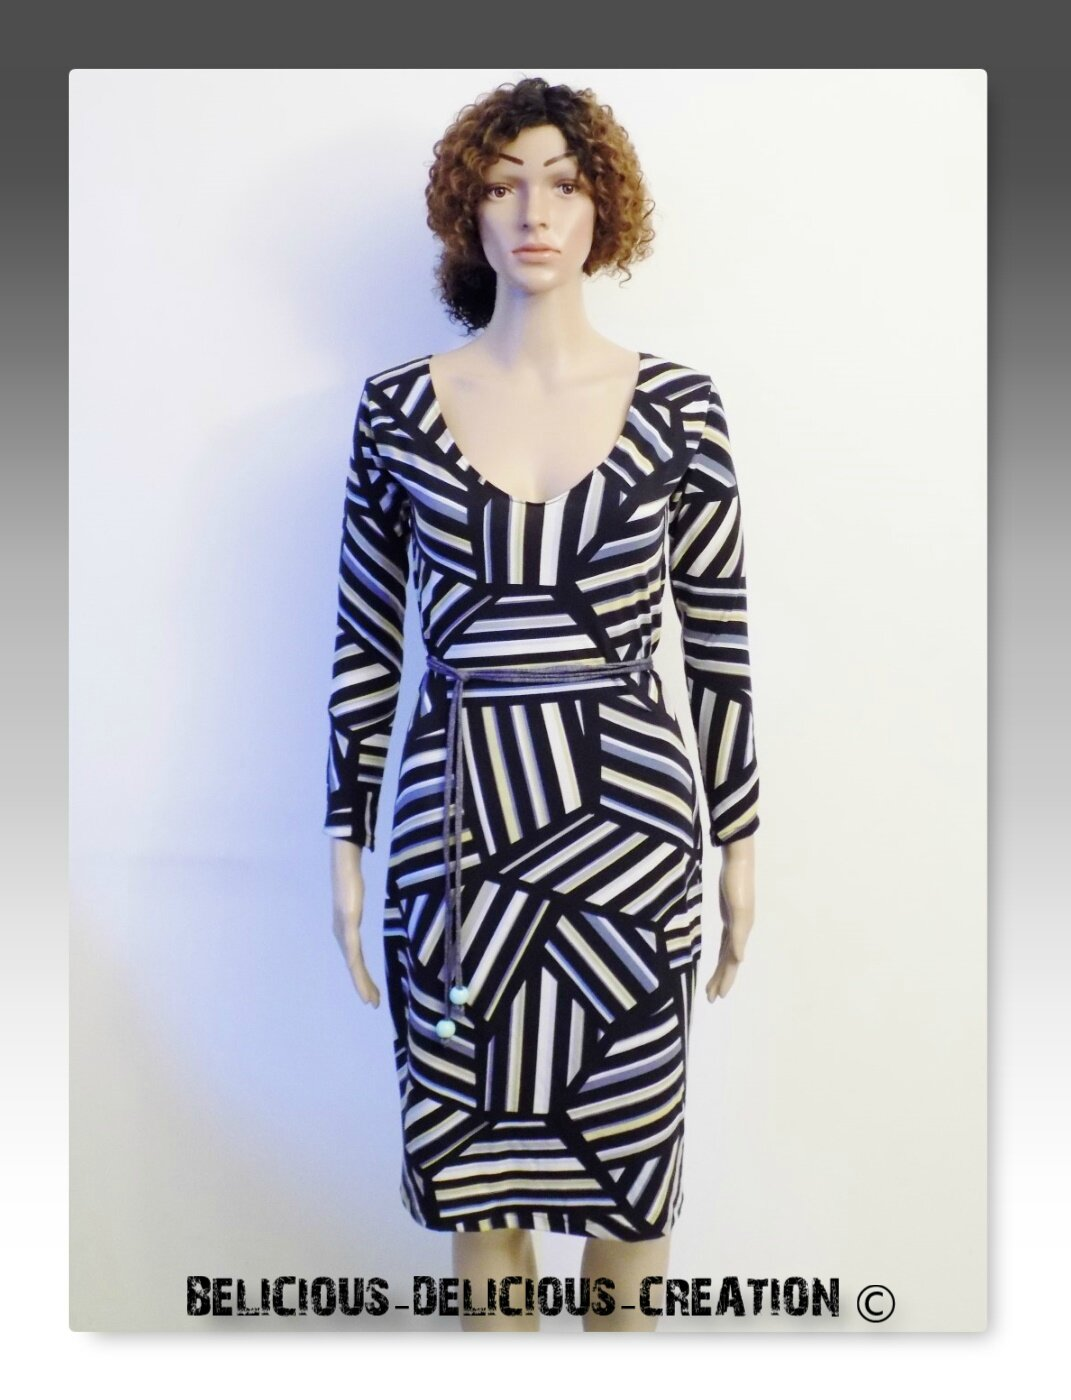 Originale robe !! MURIEL !! en Jersey imprime noir/multicolore, Long 102cm Taille: 38/40 BELICIOUS-DELICIOUS-CREATION